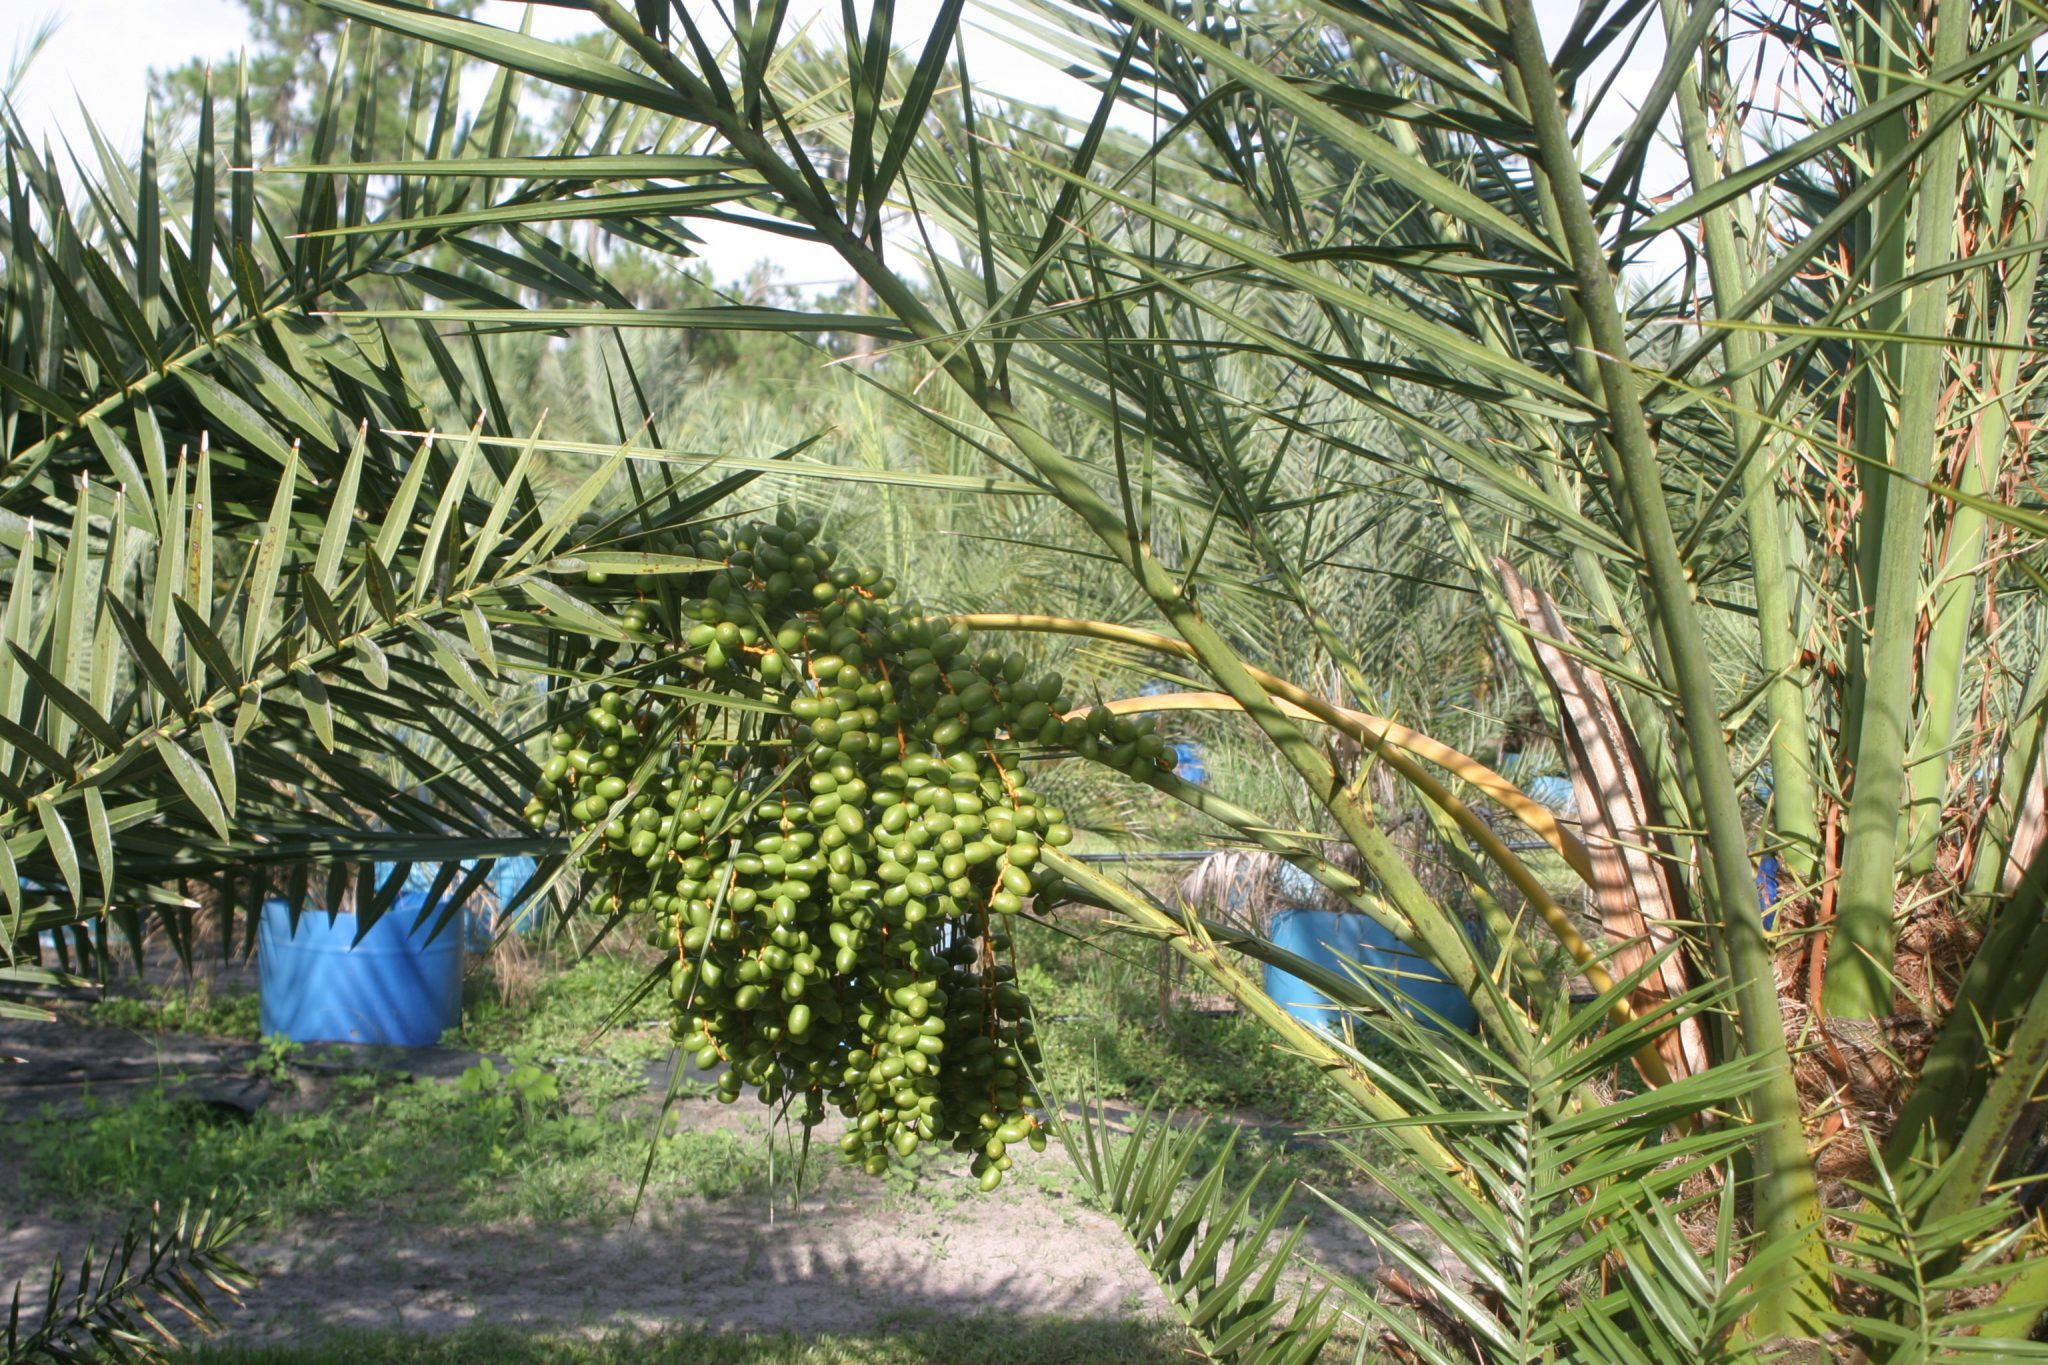 Medjool Palm - Edible Date Palms by Hardy Palm Tree Farm